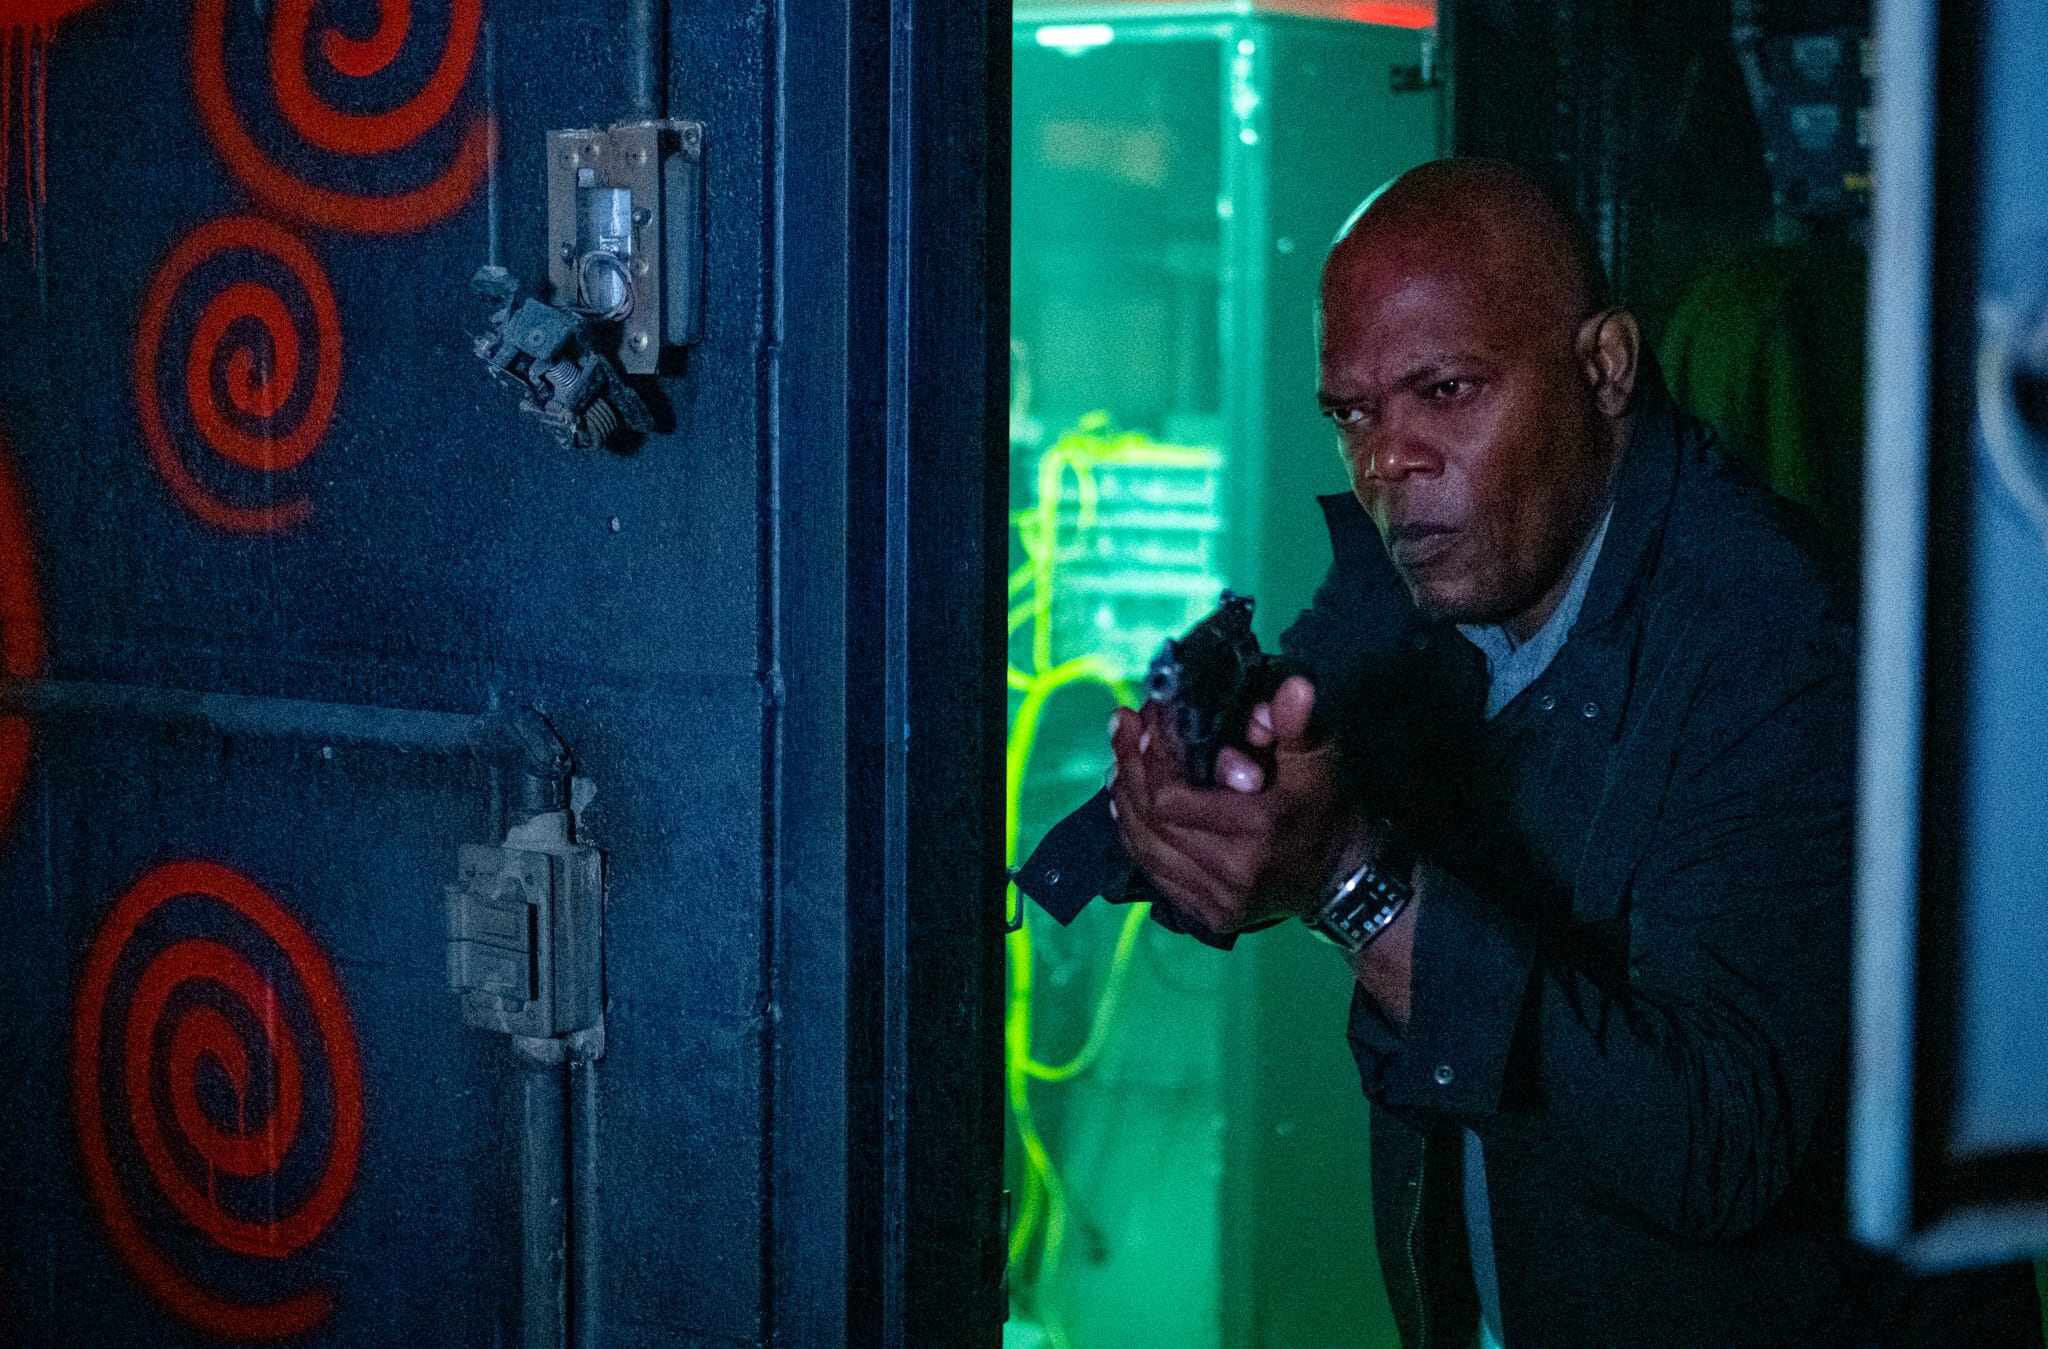 Spiral-from-the-book-of-saw-2021-samuel-l-jackson